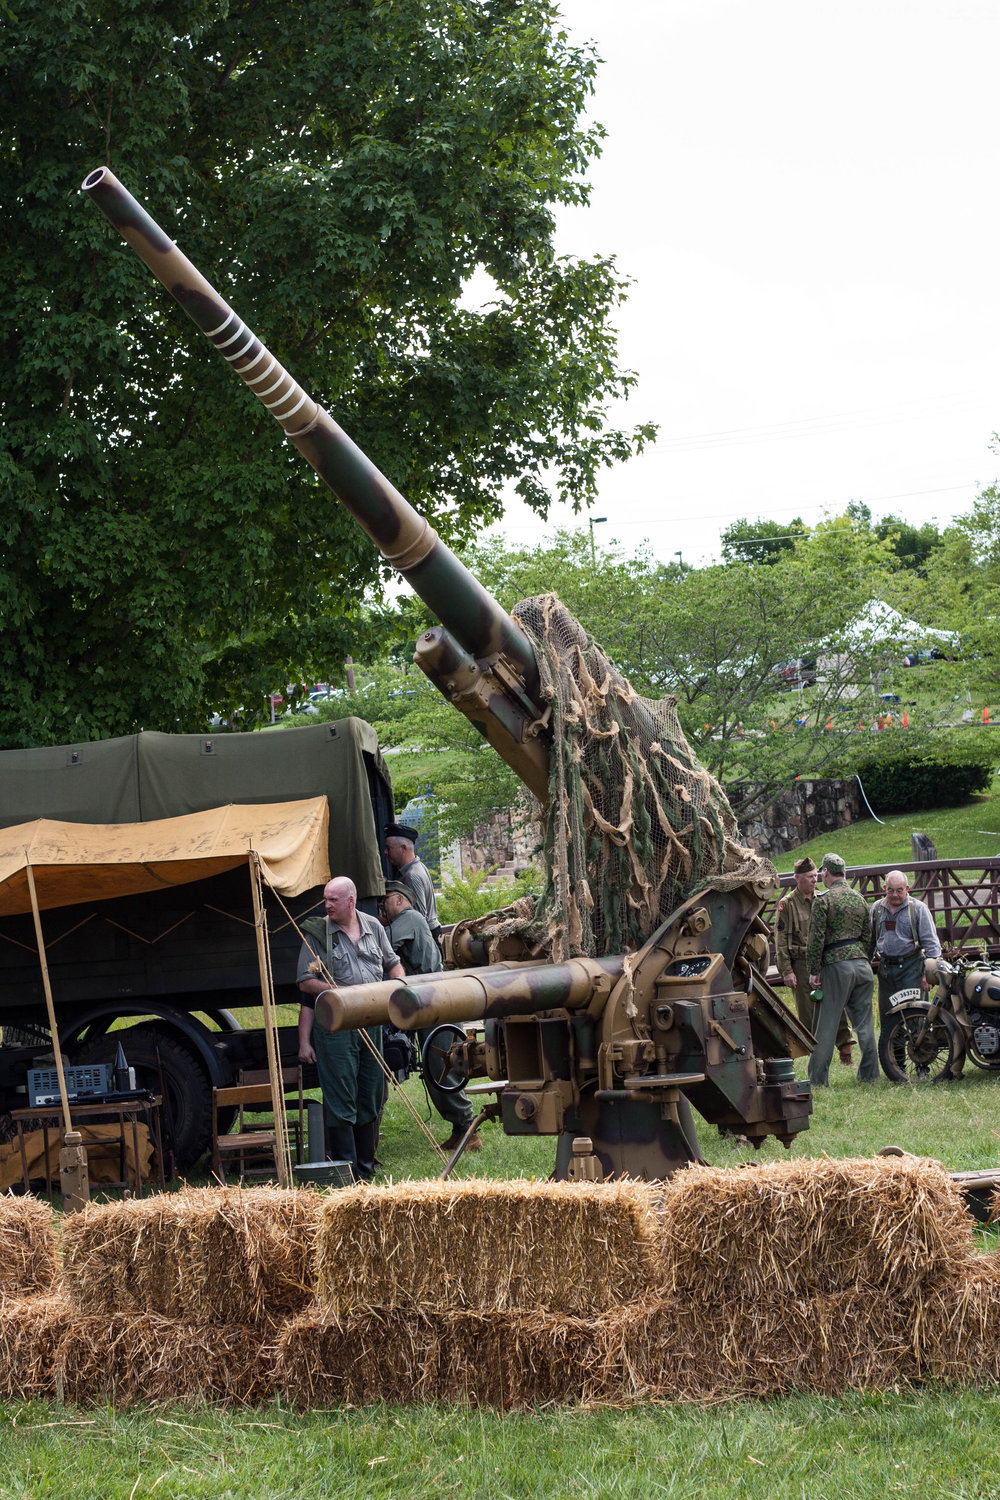 German '88. Oak Ridge's Secret City Reenactment, 2015